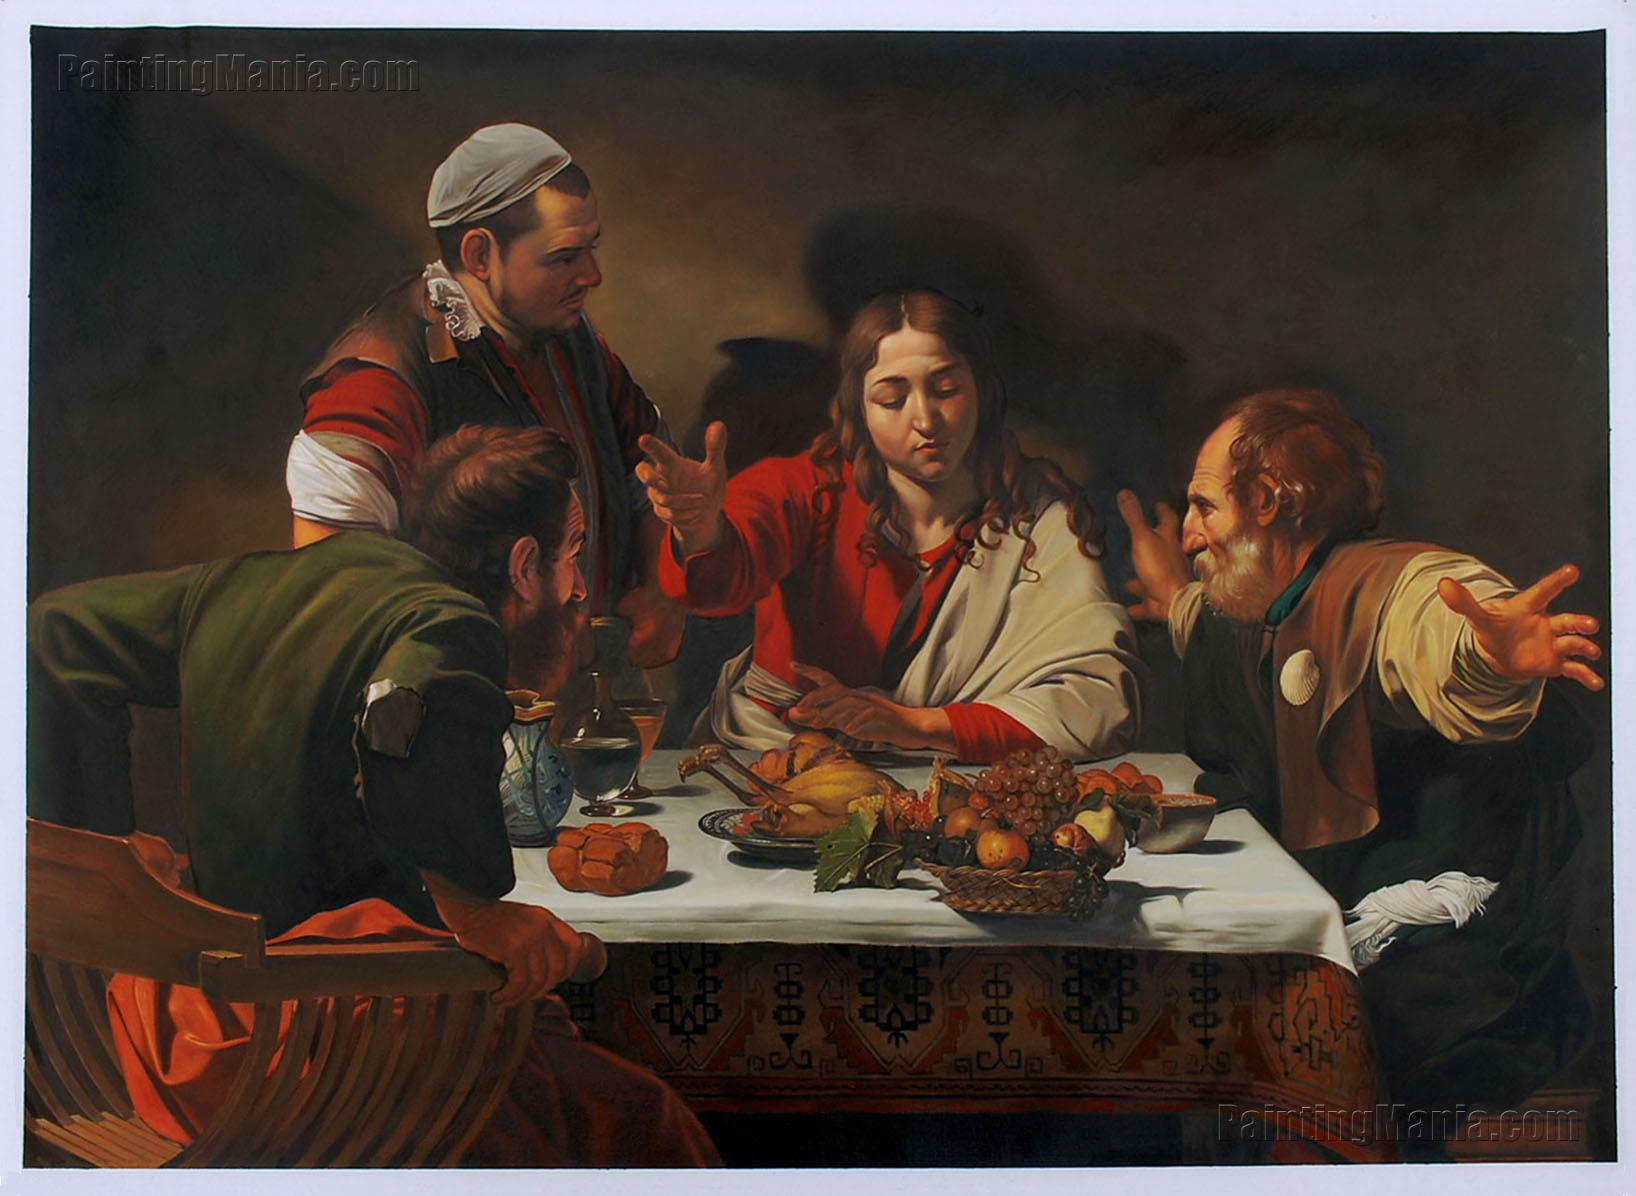 Supper at Emmaus (Cena in Emmaus)